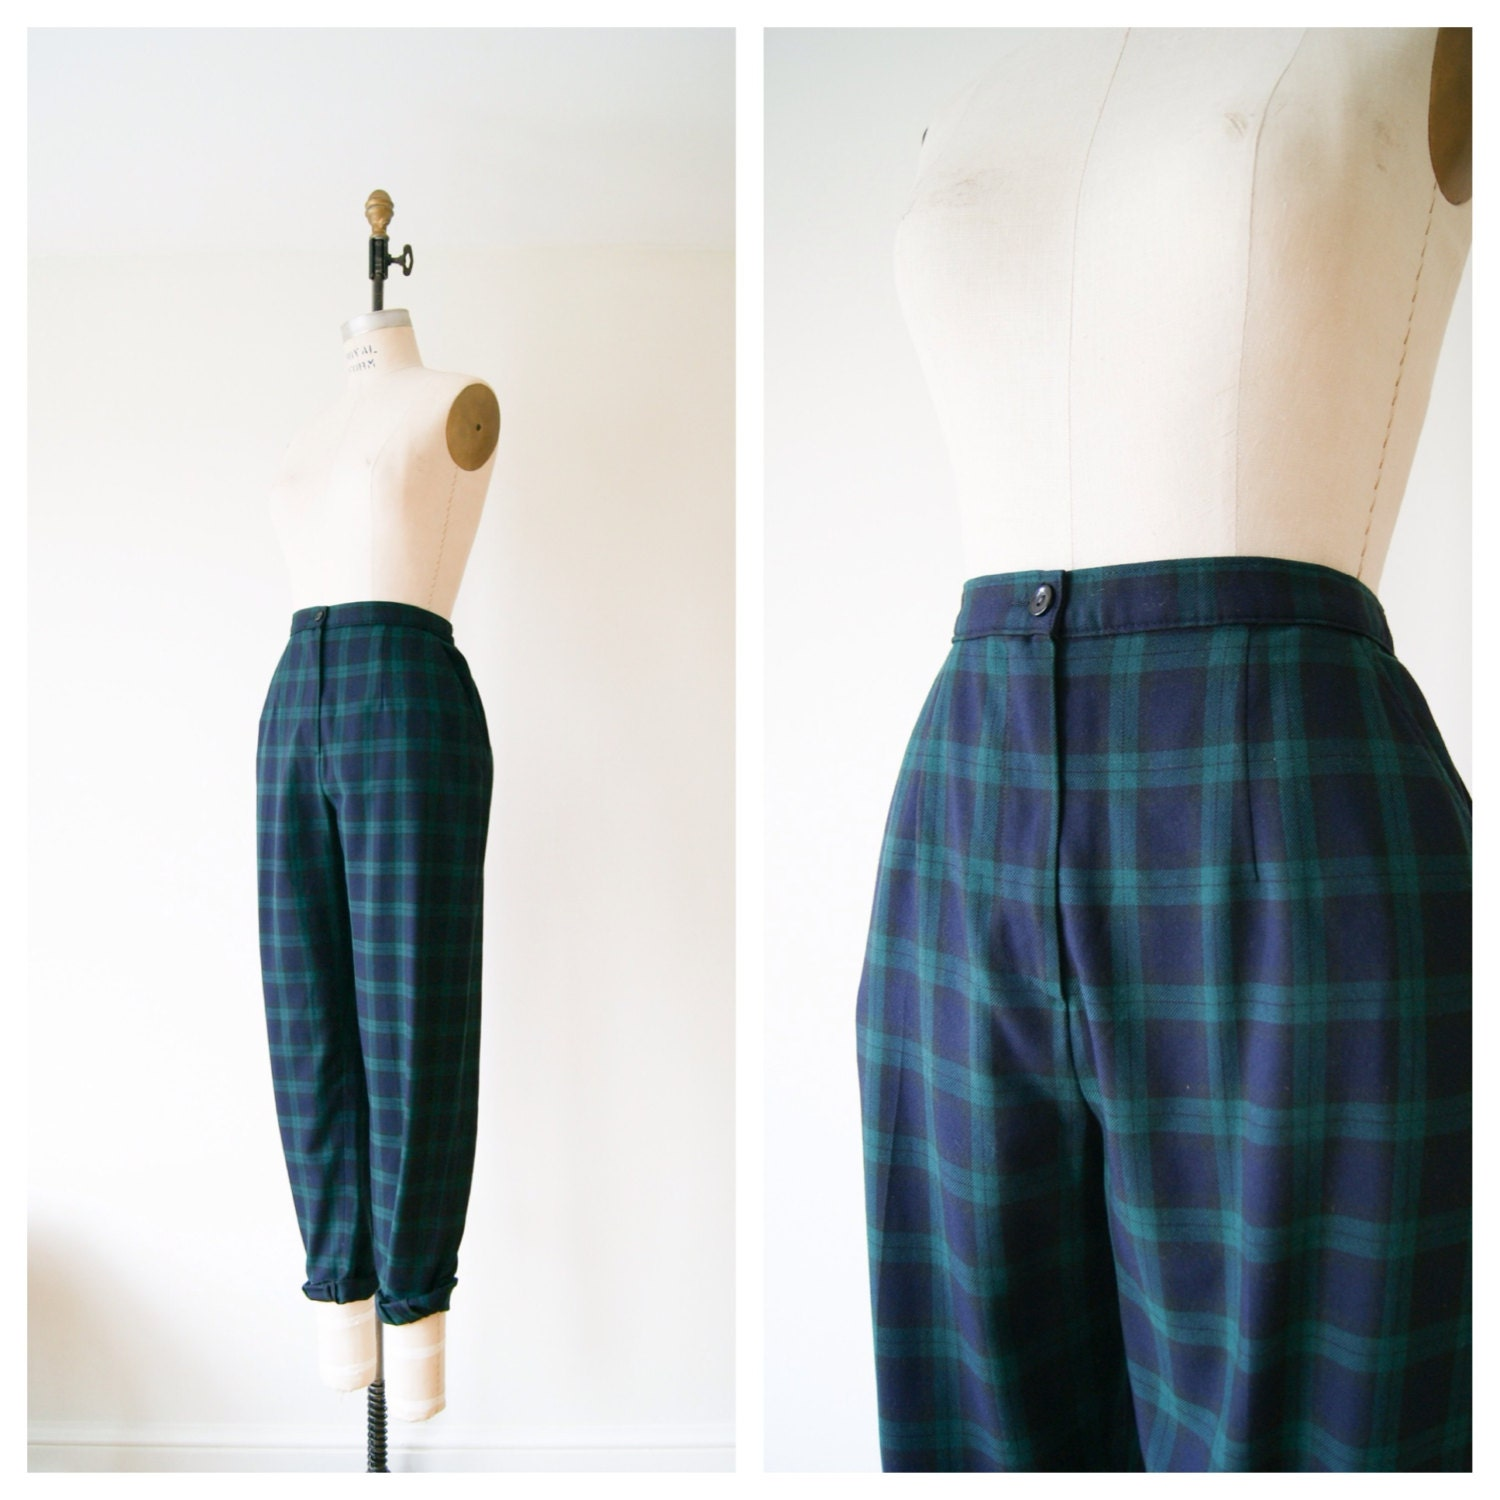 plaid pants vintage 80s green and navy blue tartan plaid. Black Bedroom Furniture Sets. Home Design Ideas